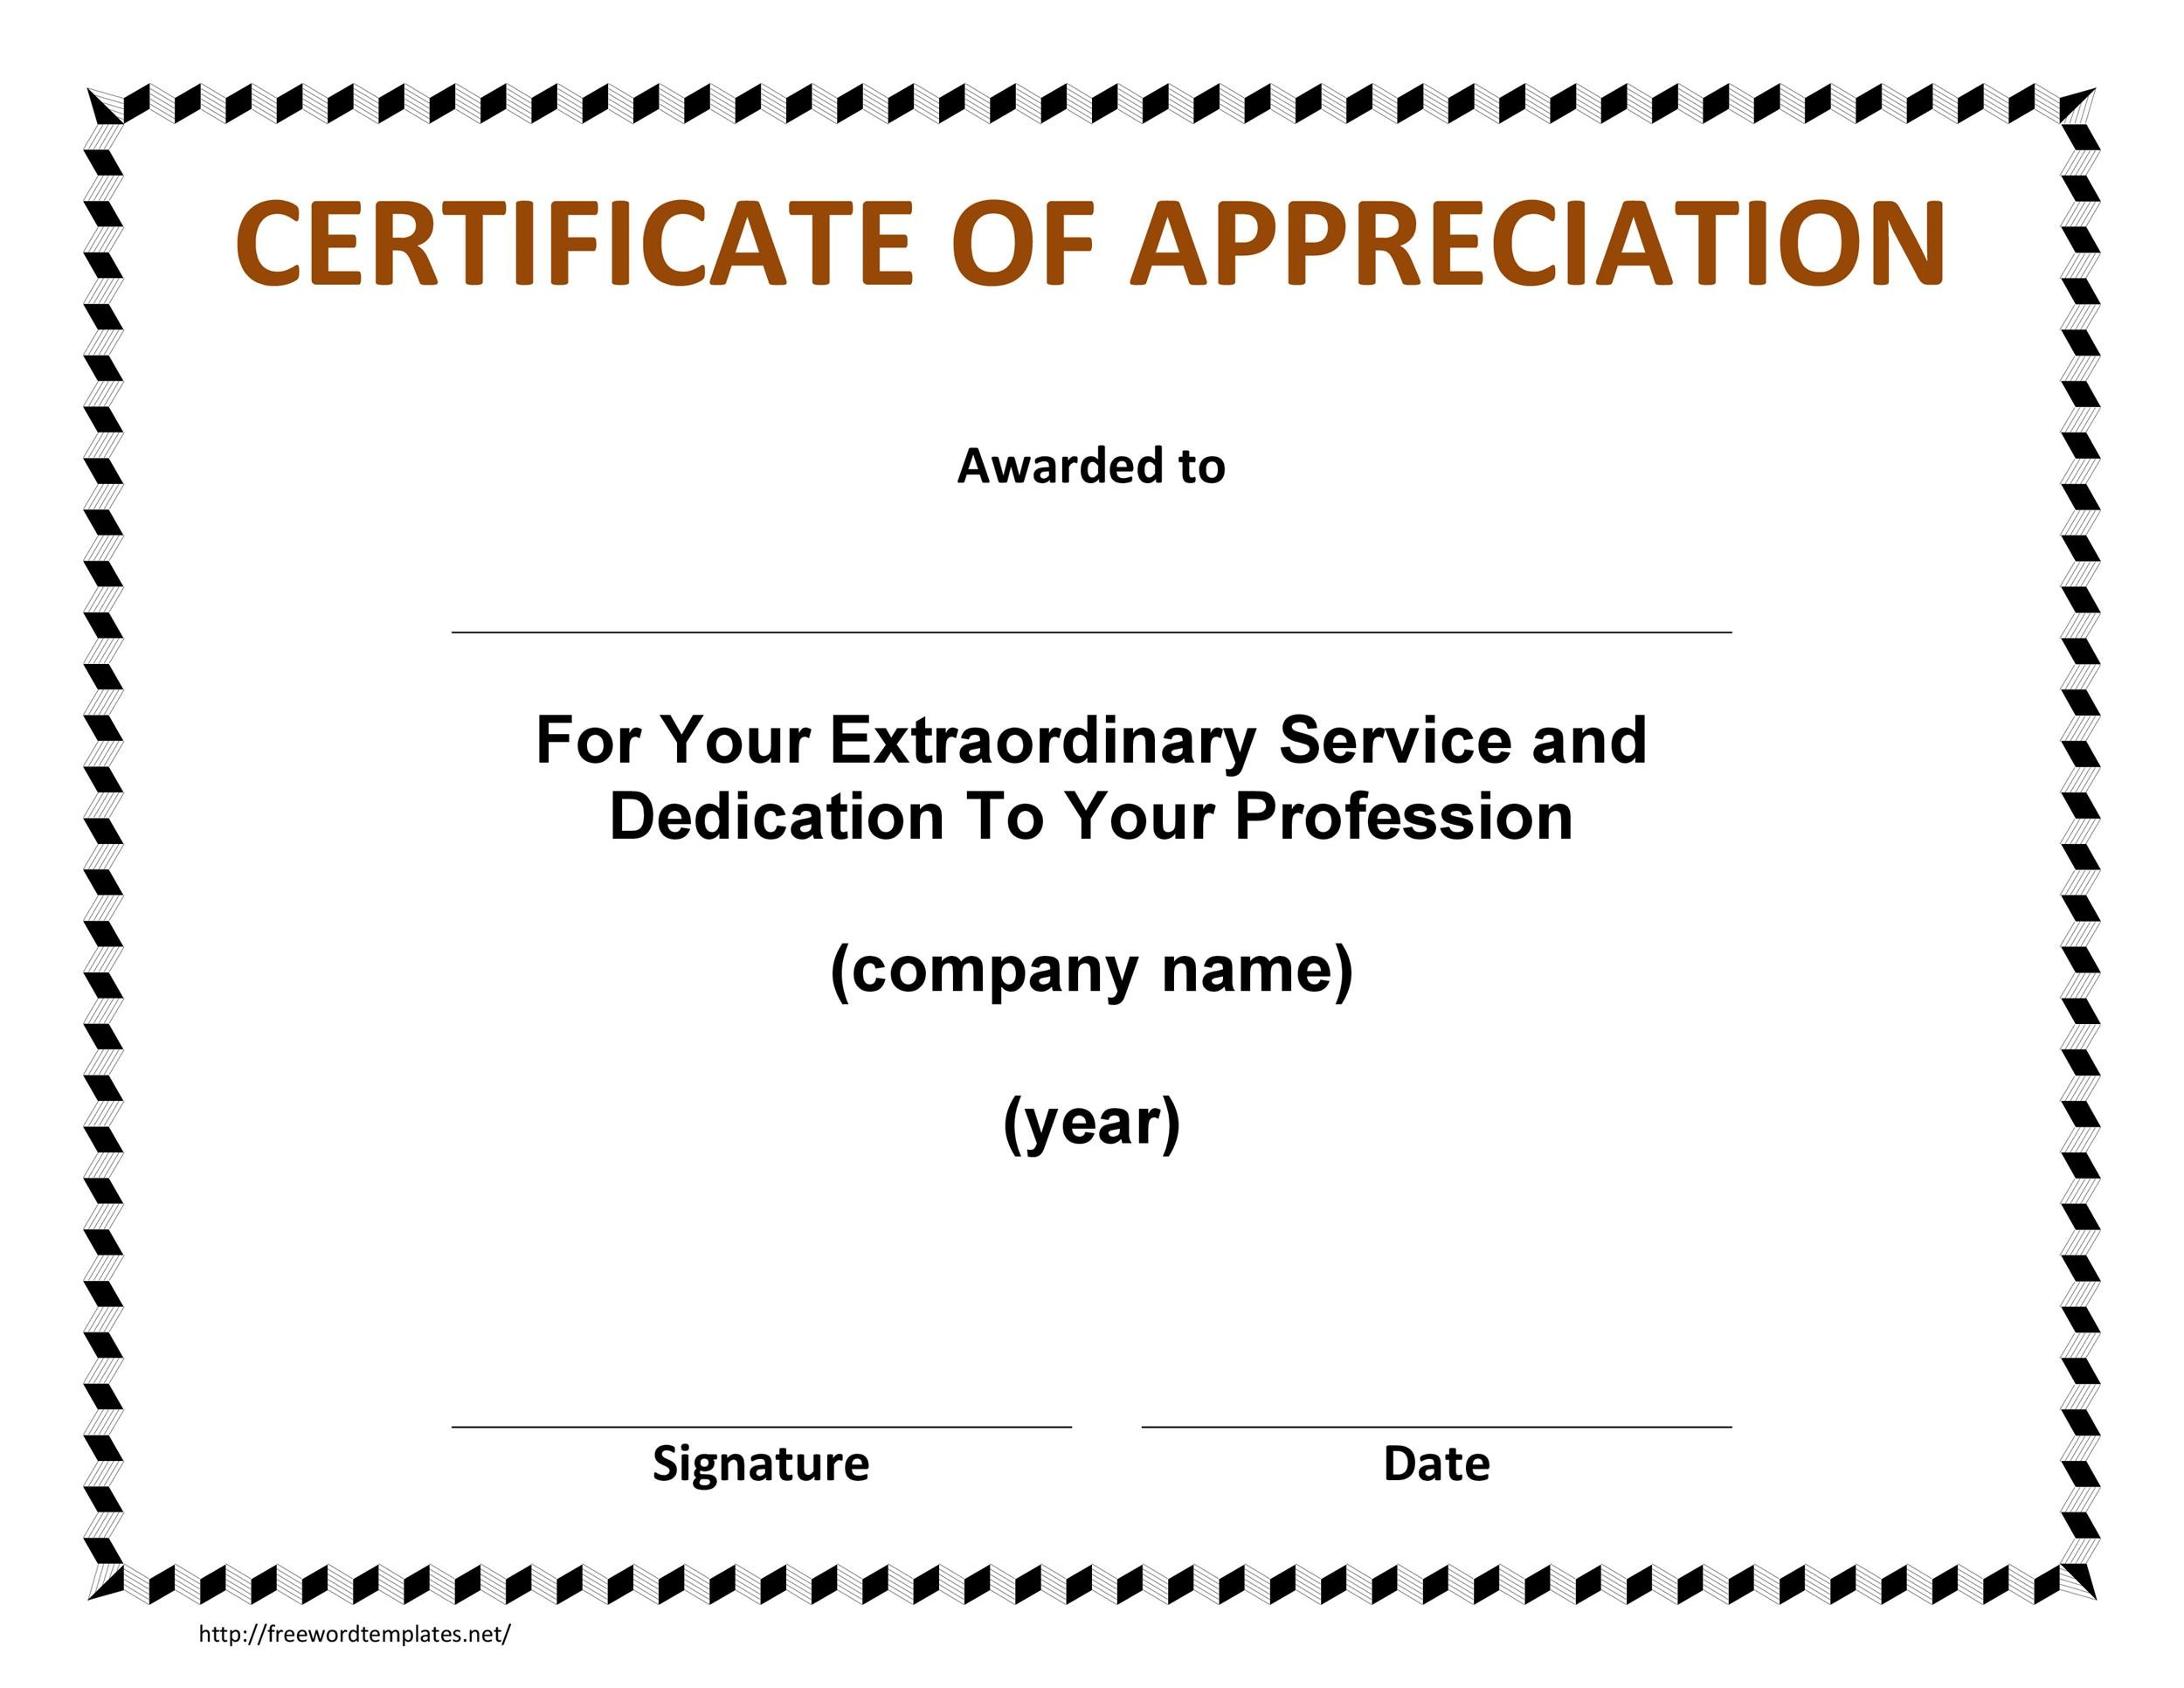 30 free certificate of appreciation templates and letters printable certificate of appreciation 04 expocarfo